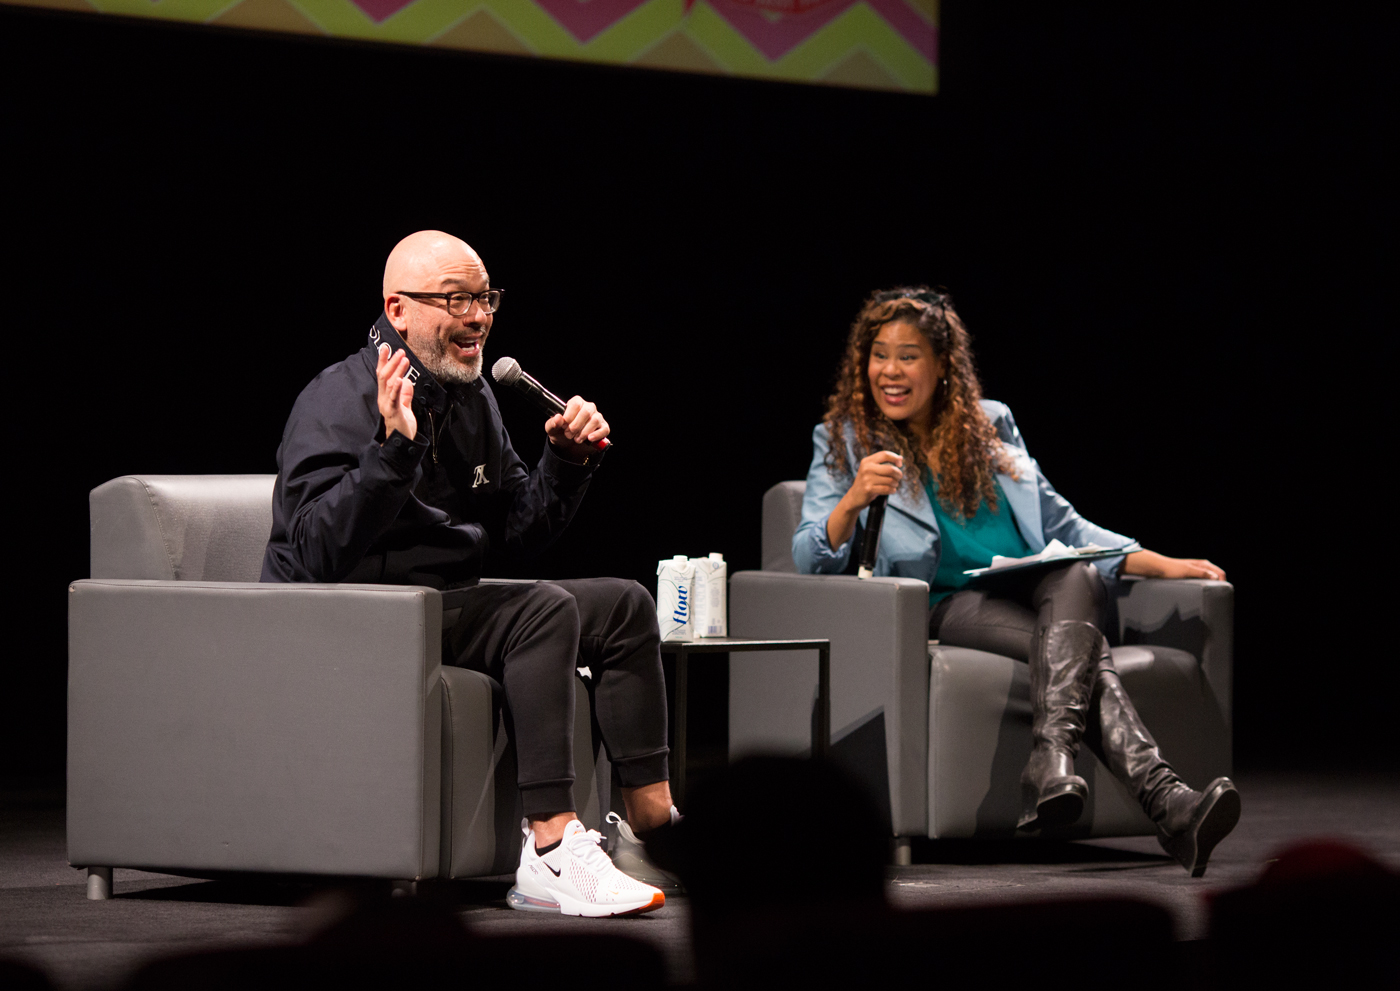 Jo Koy at the TIFF Bell Lightbox for Just For Laughs 42.